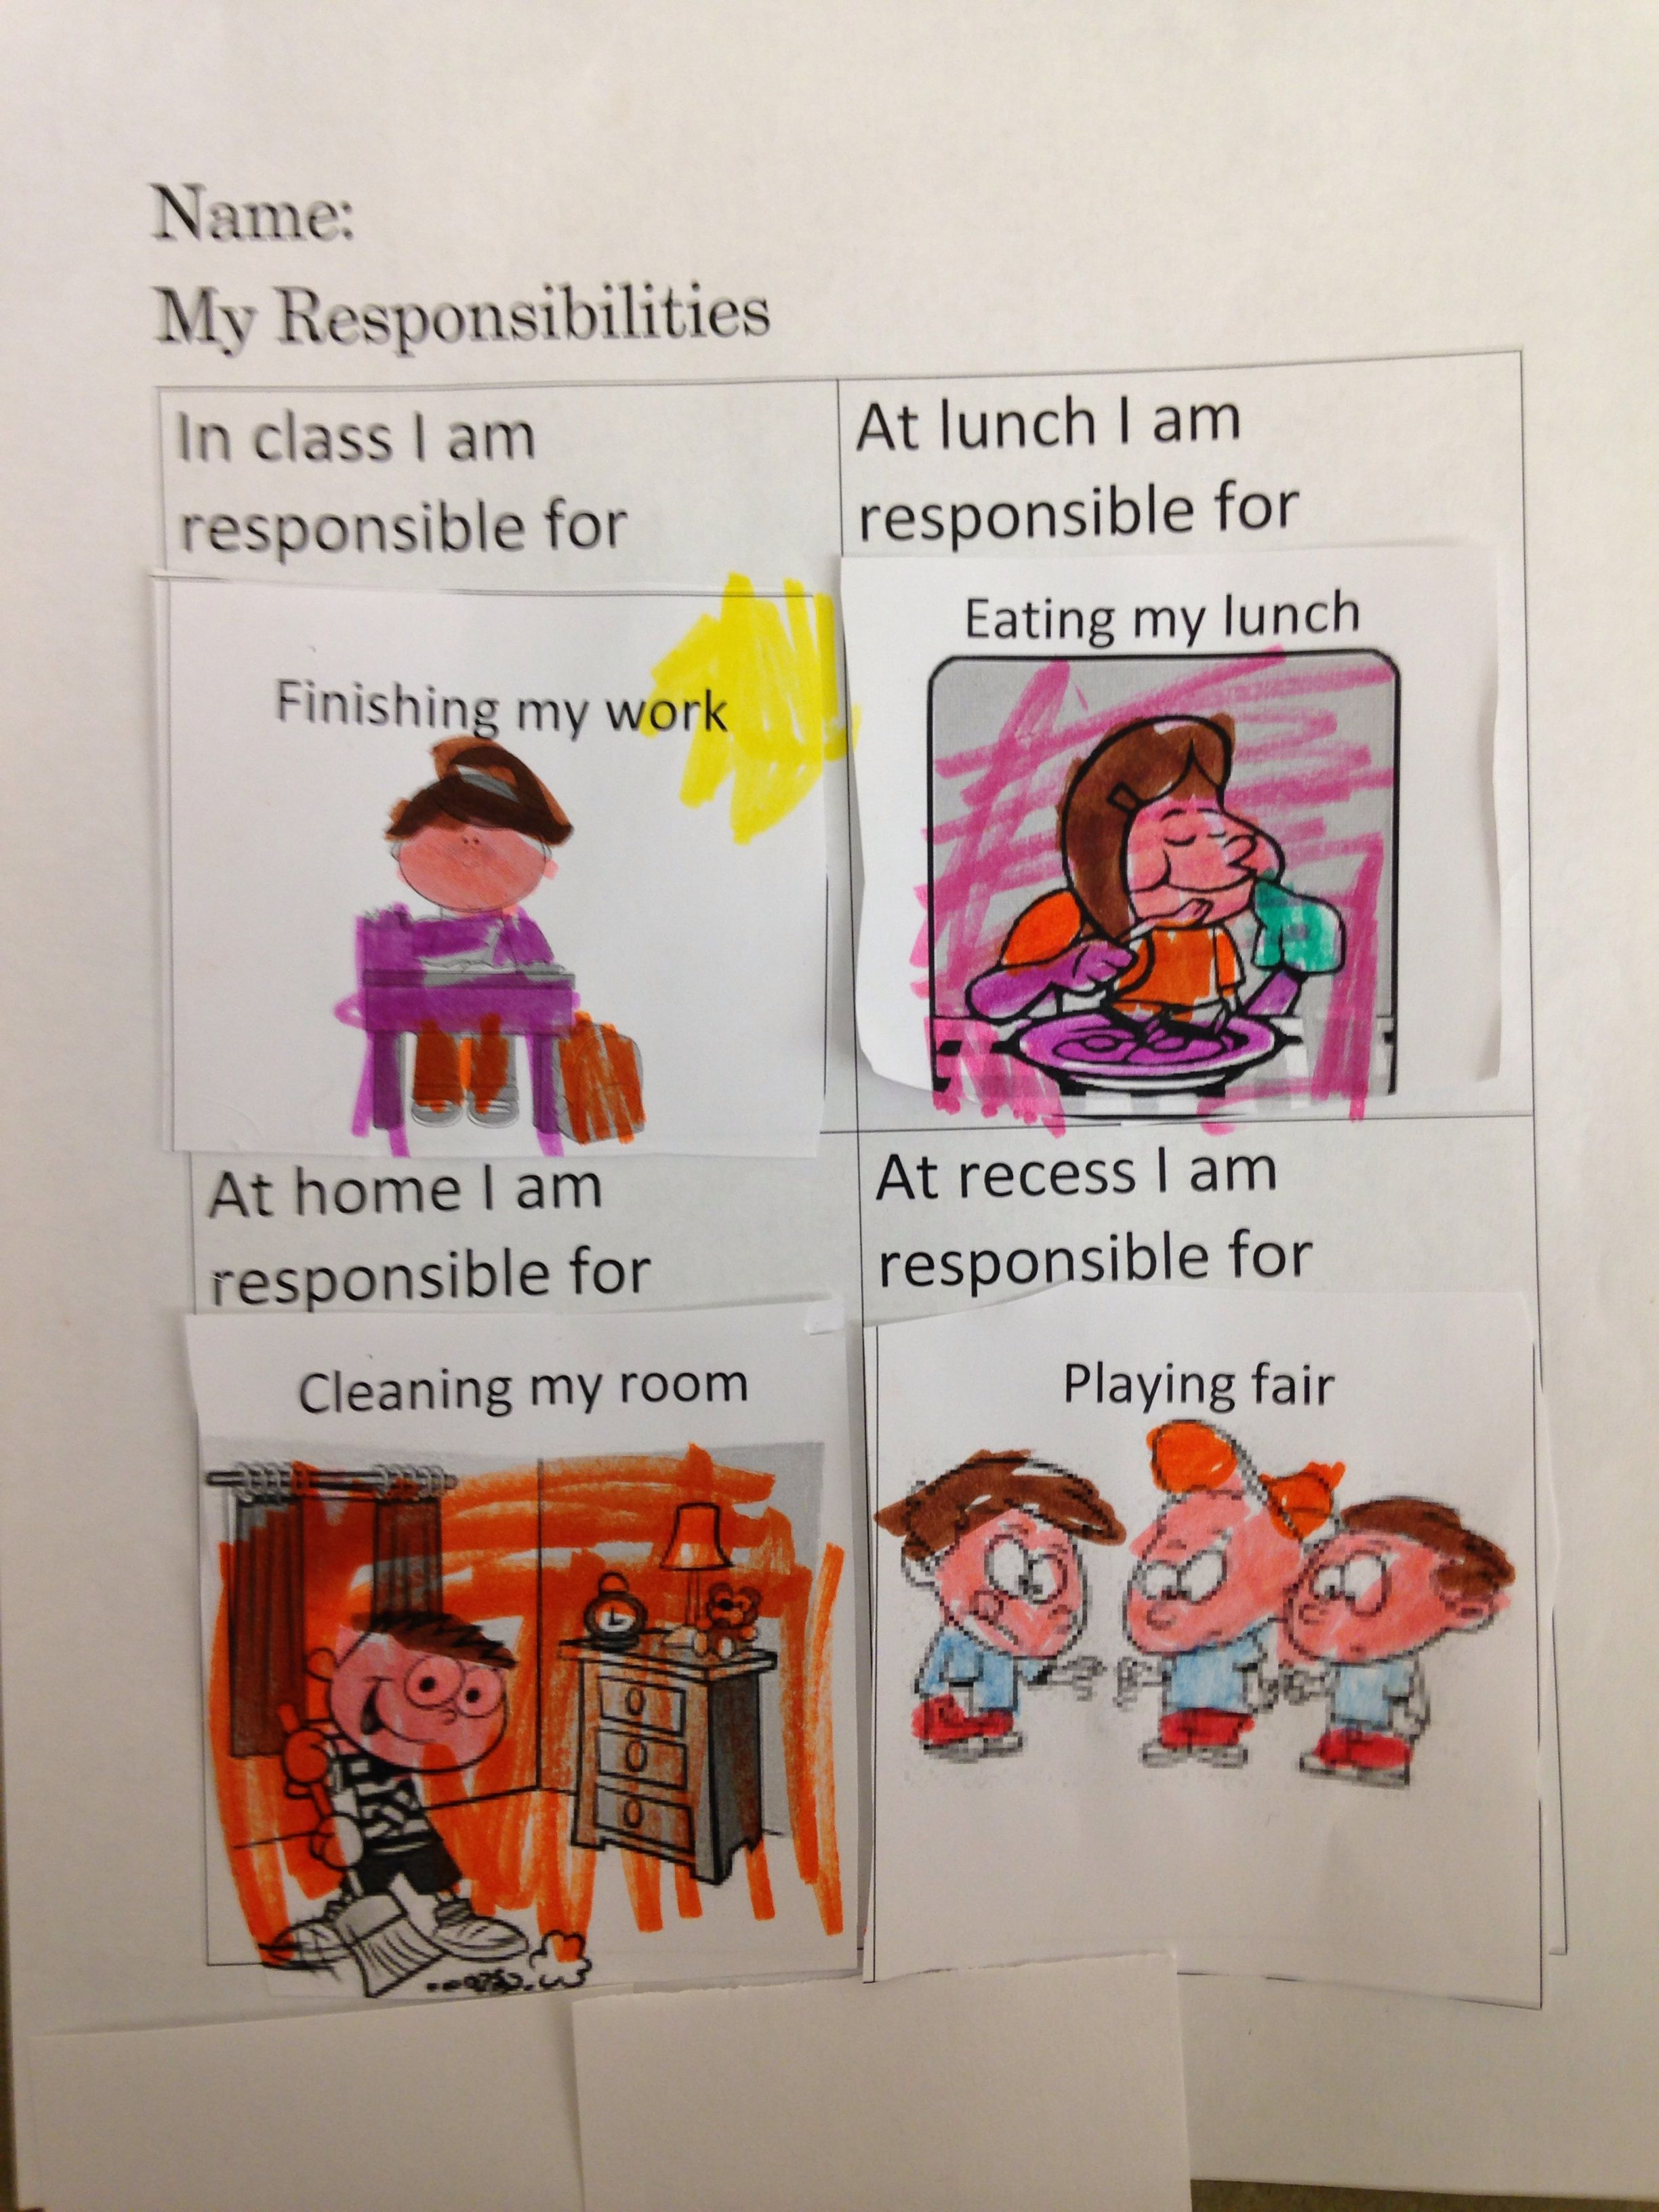 Lesson 1 In Responsibility Unit Match The Responsibility With The Environment Contact Me For